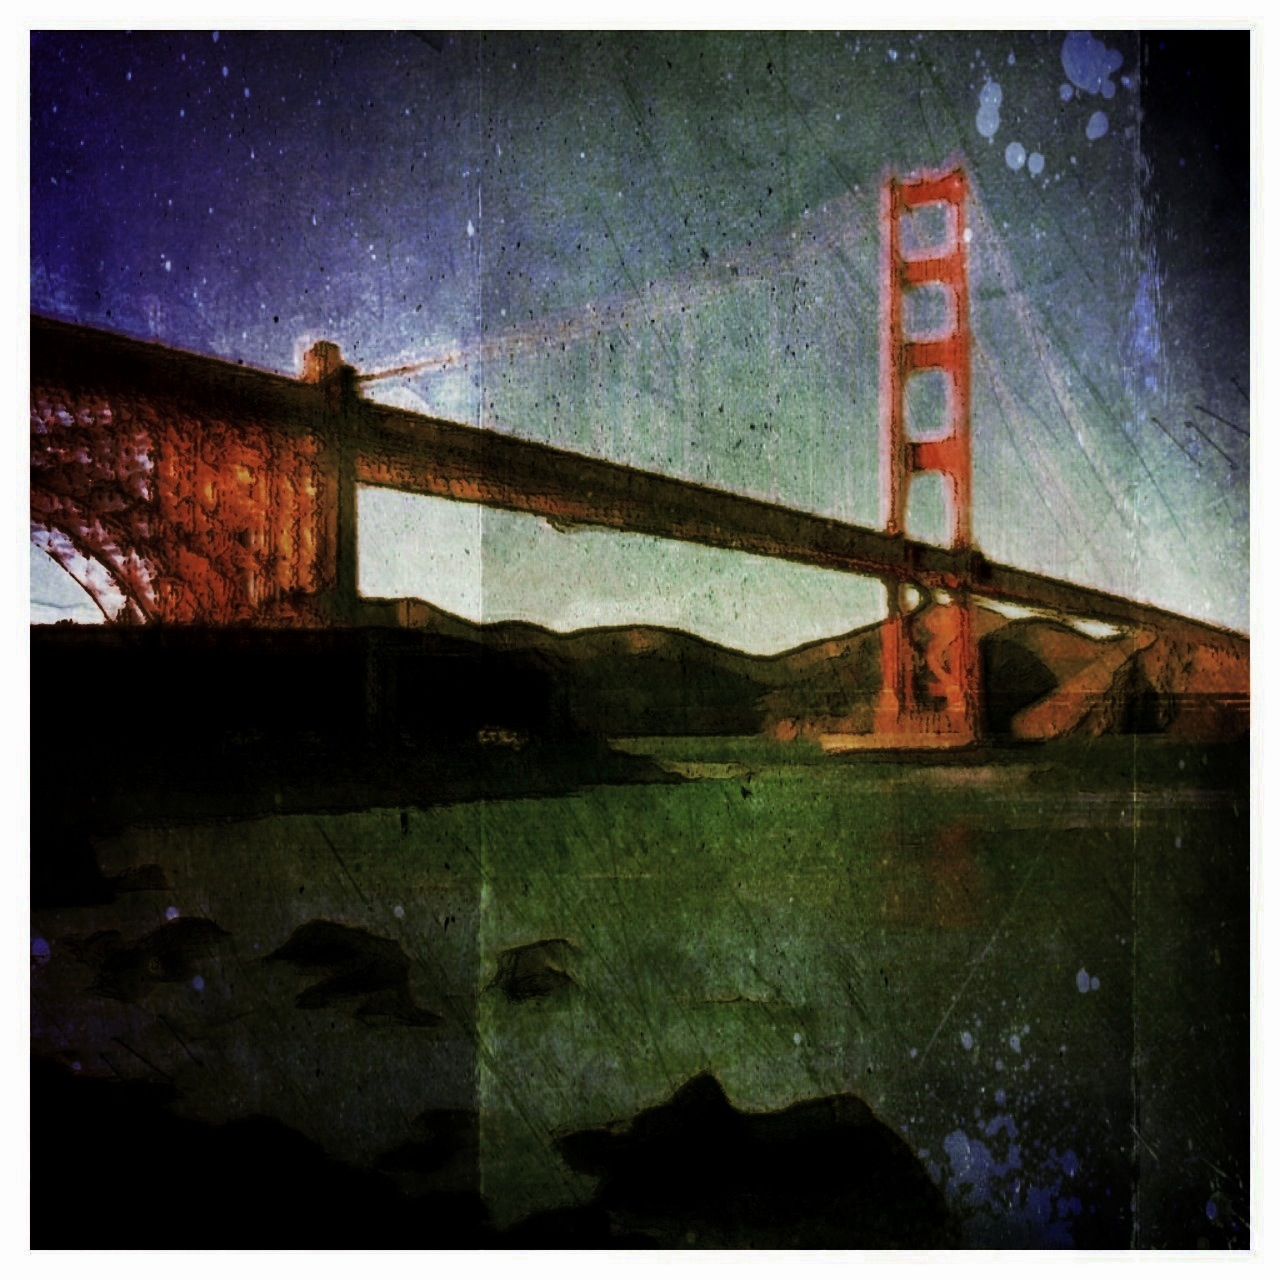 Golden Gate Bridge - February 8th, 2013